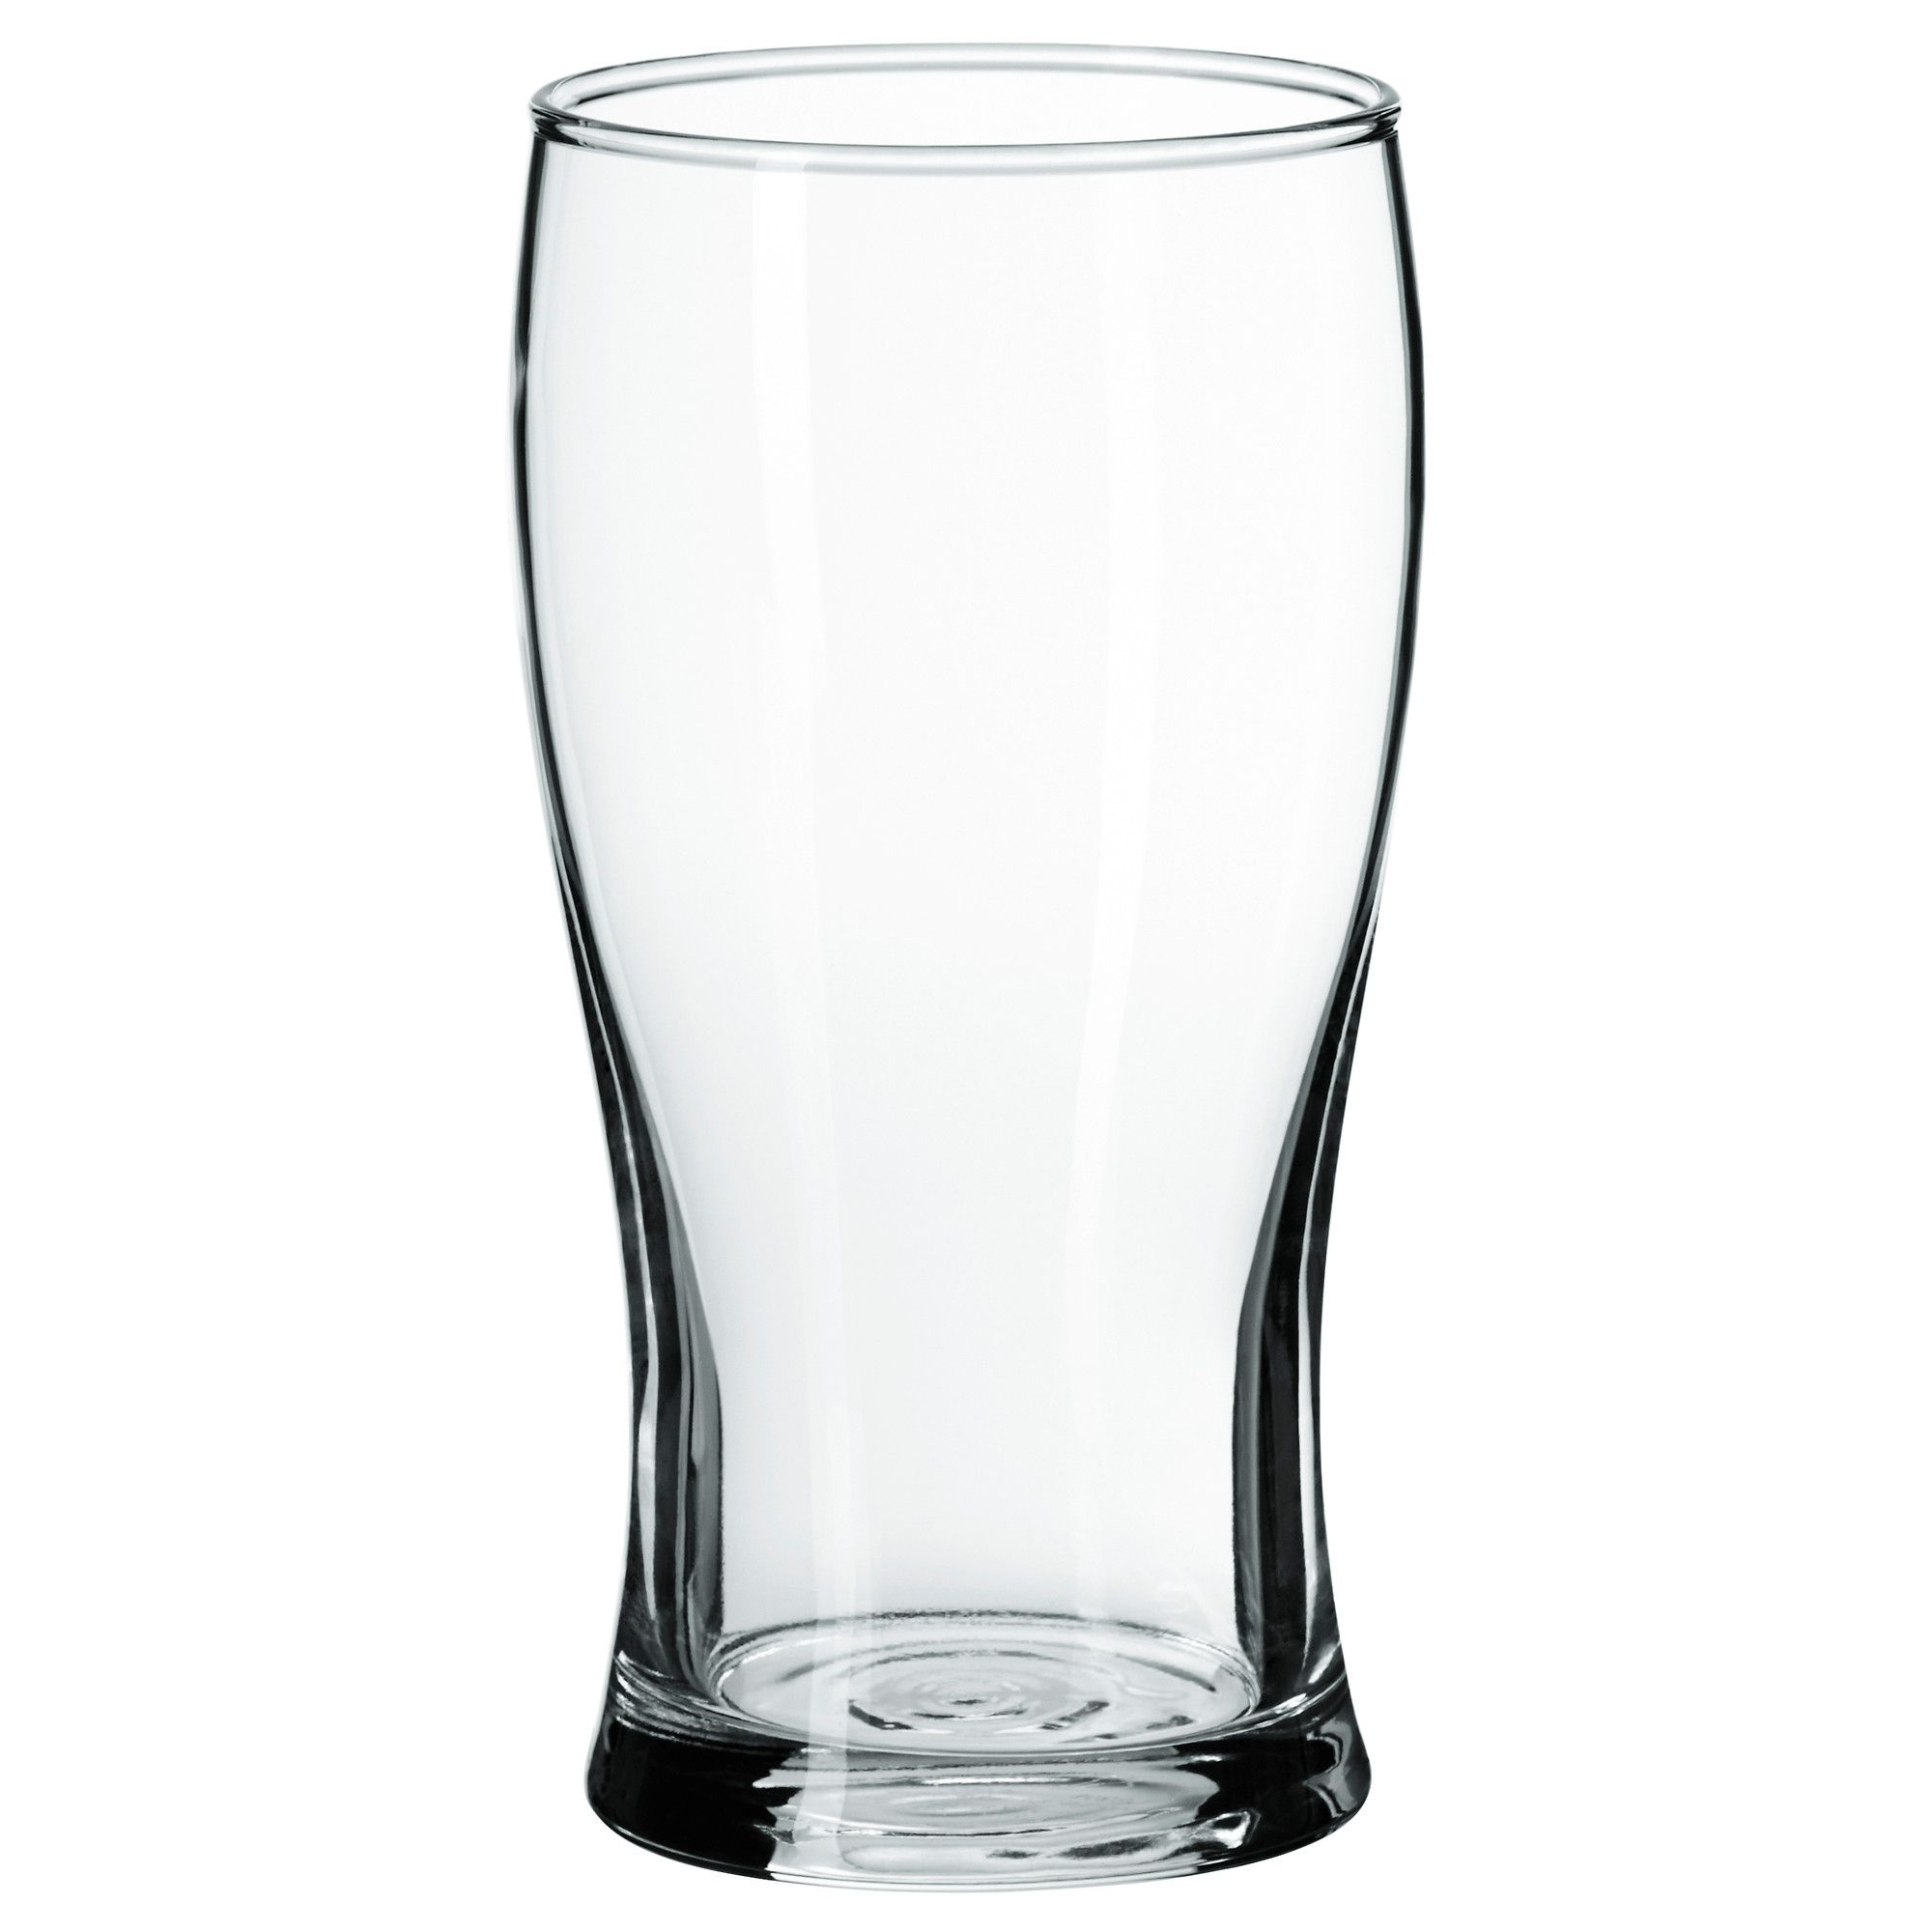 LODRÄT Beer glass, clear glass Tablewares and Cookware